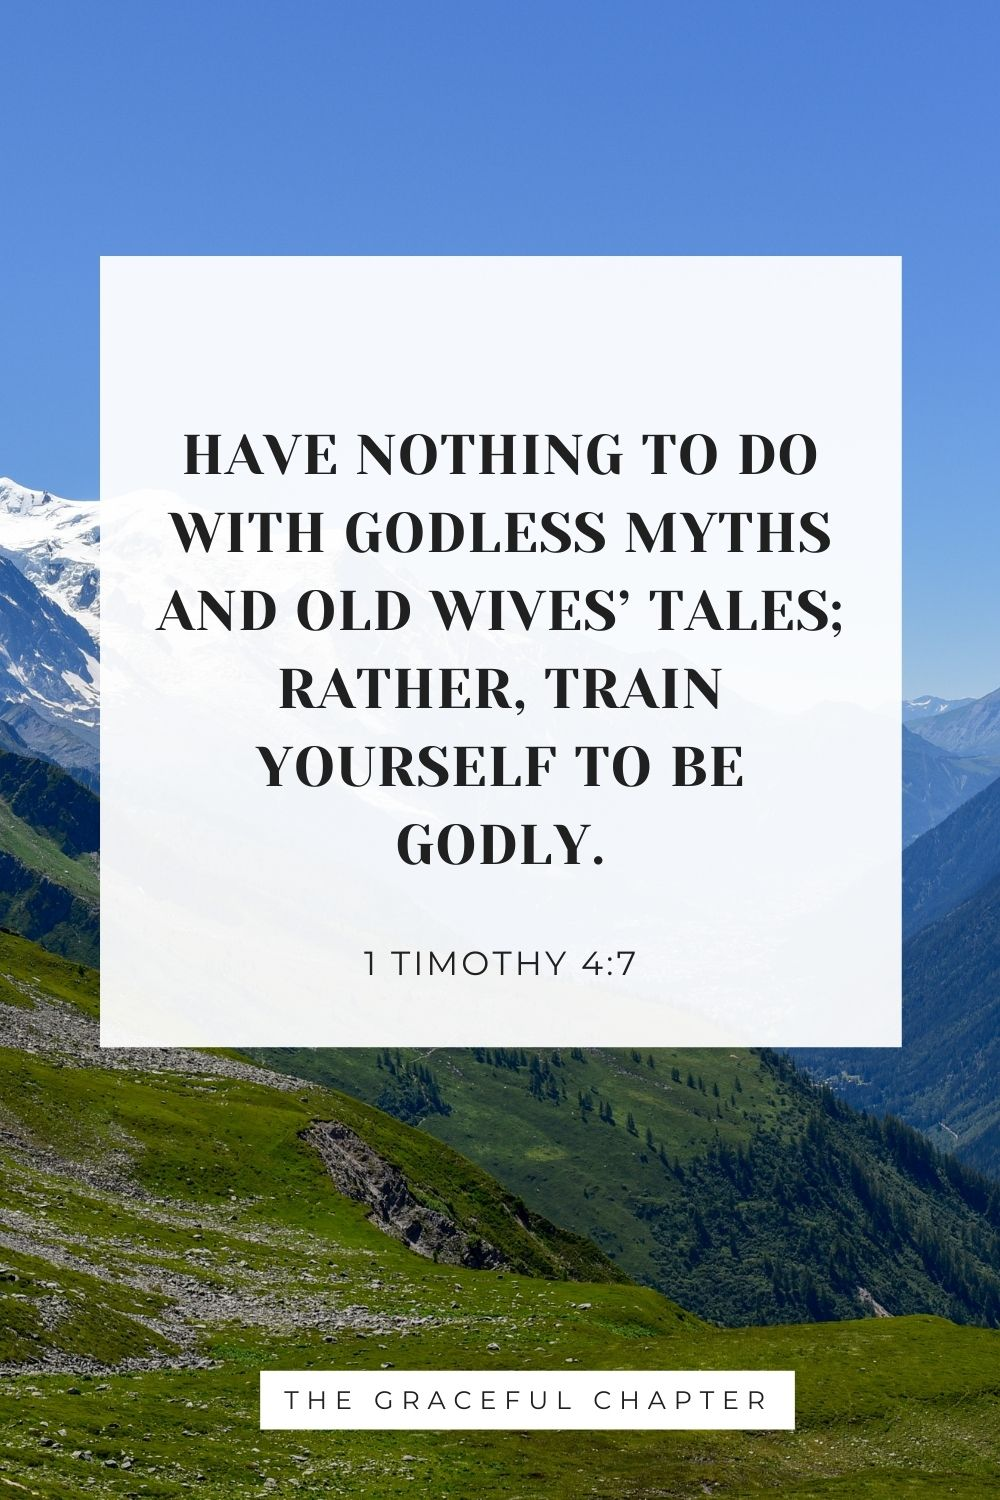 Have nothing to do with godless myths and old wives' tales; rather, train yourself to be godly. 1 Timothy 4:7